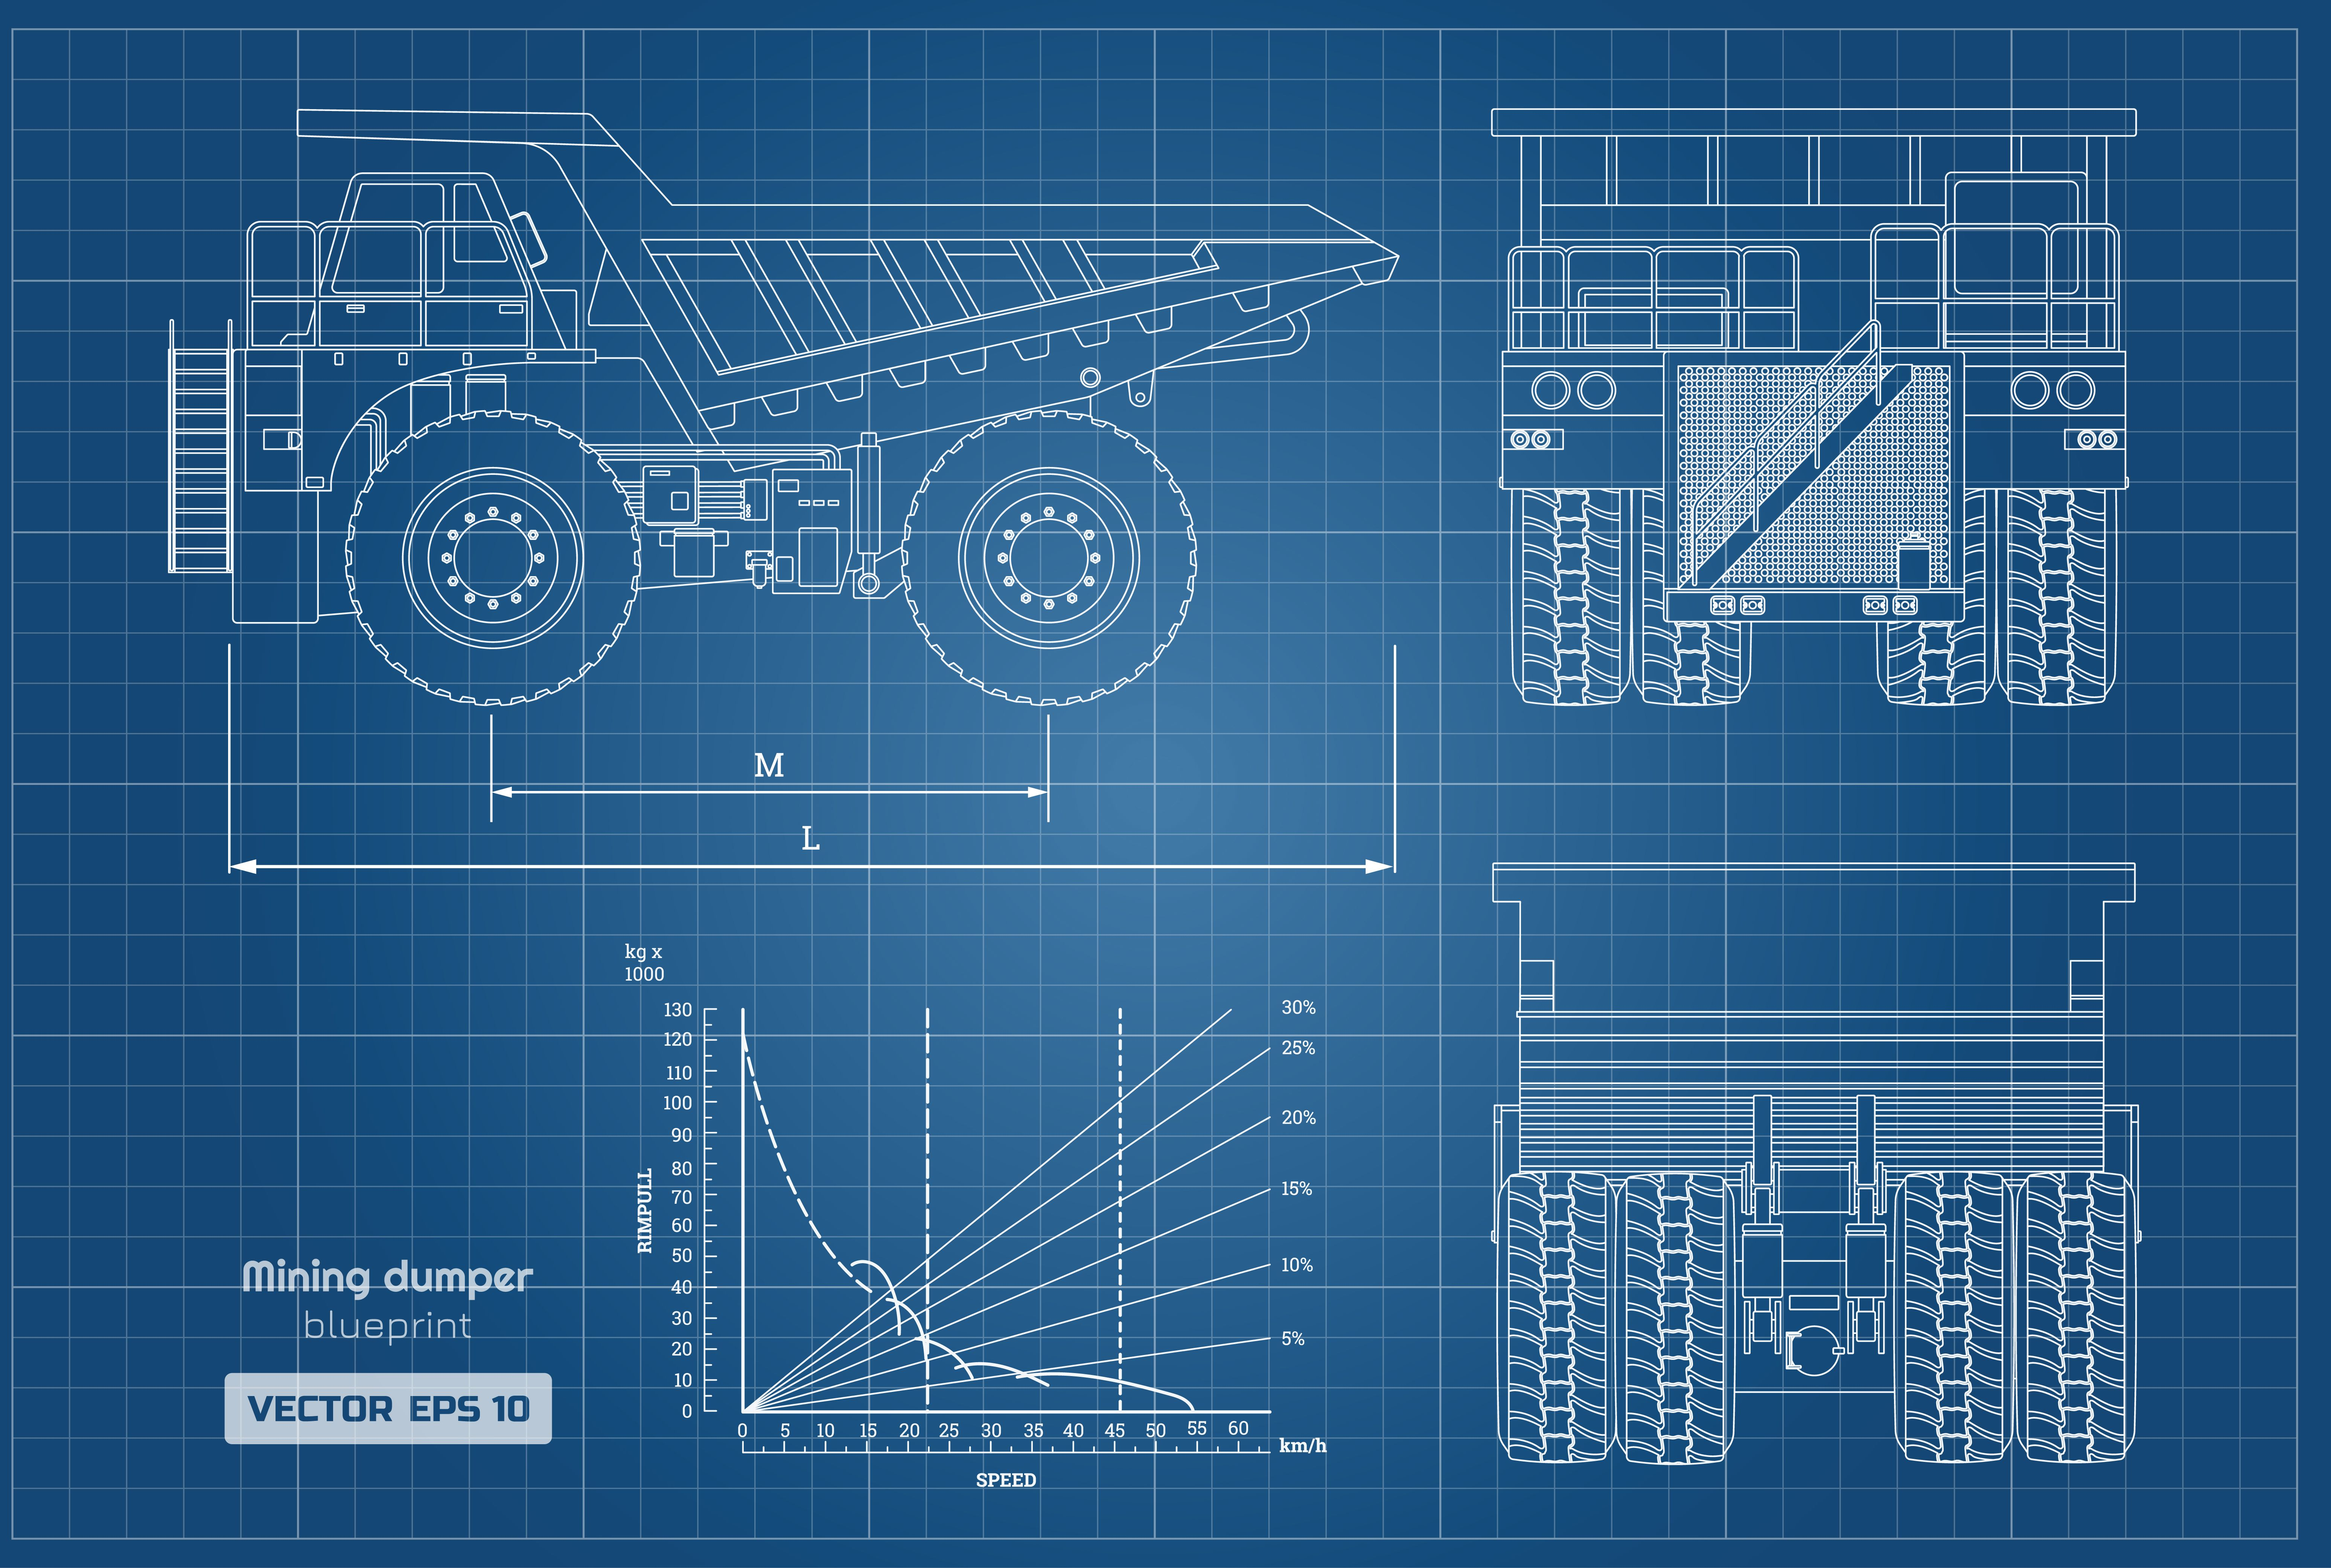 Why Are Blueprints Blue? Mental floss  Mental Floss